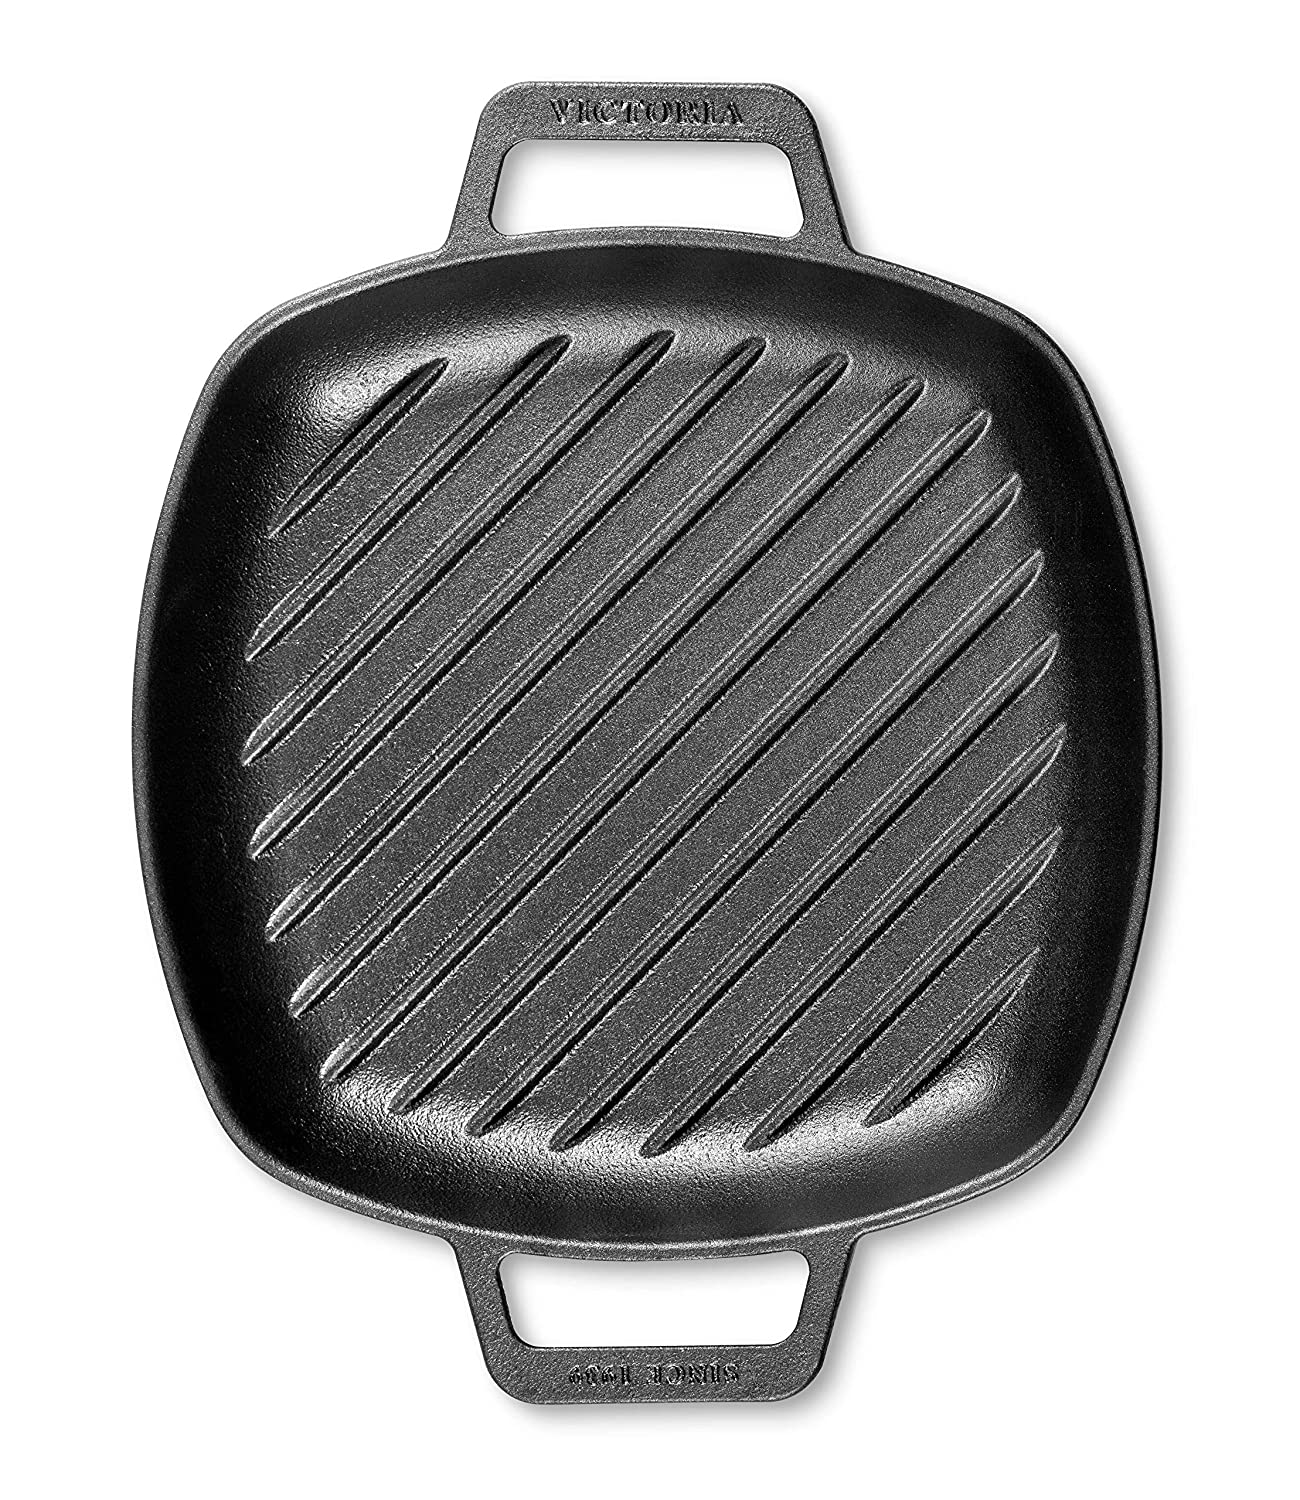 Victoria SKL-201 Cast Iron Square Grill Double Loop Handles, Griddle Pan Seasoned with 100 Kosher Certified Non-GMO Flaxseed Oil, 10 x 10 Inch, Black